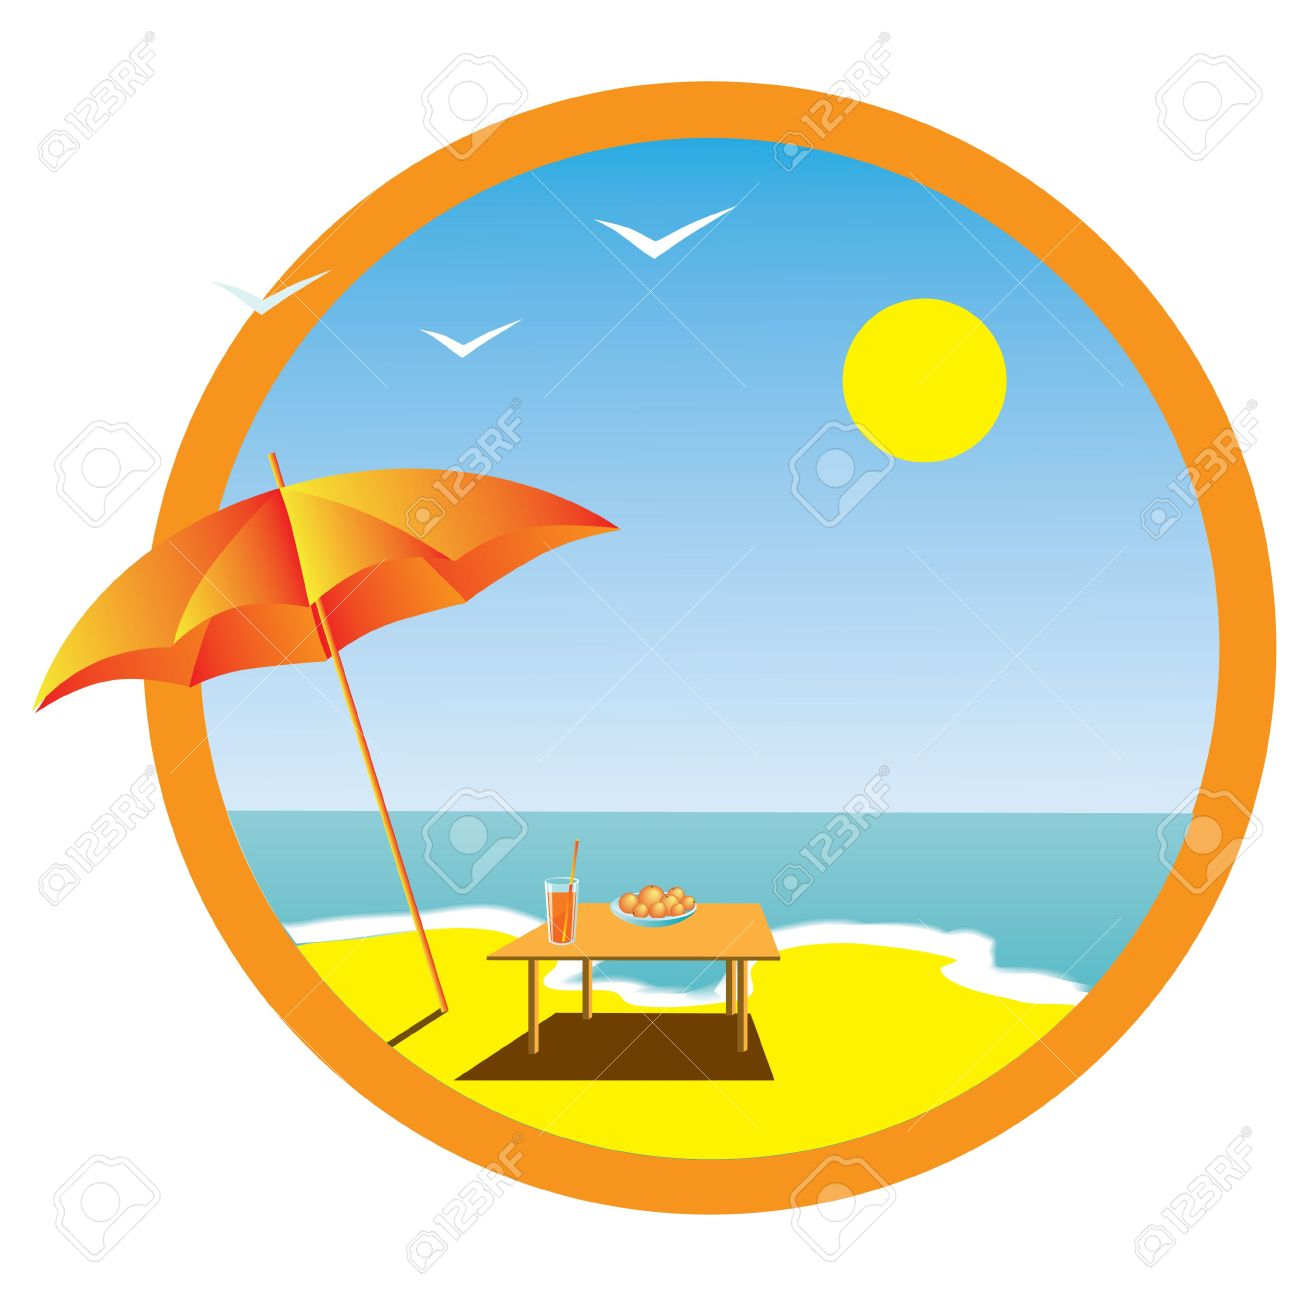 Summer Holiday Clipart.